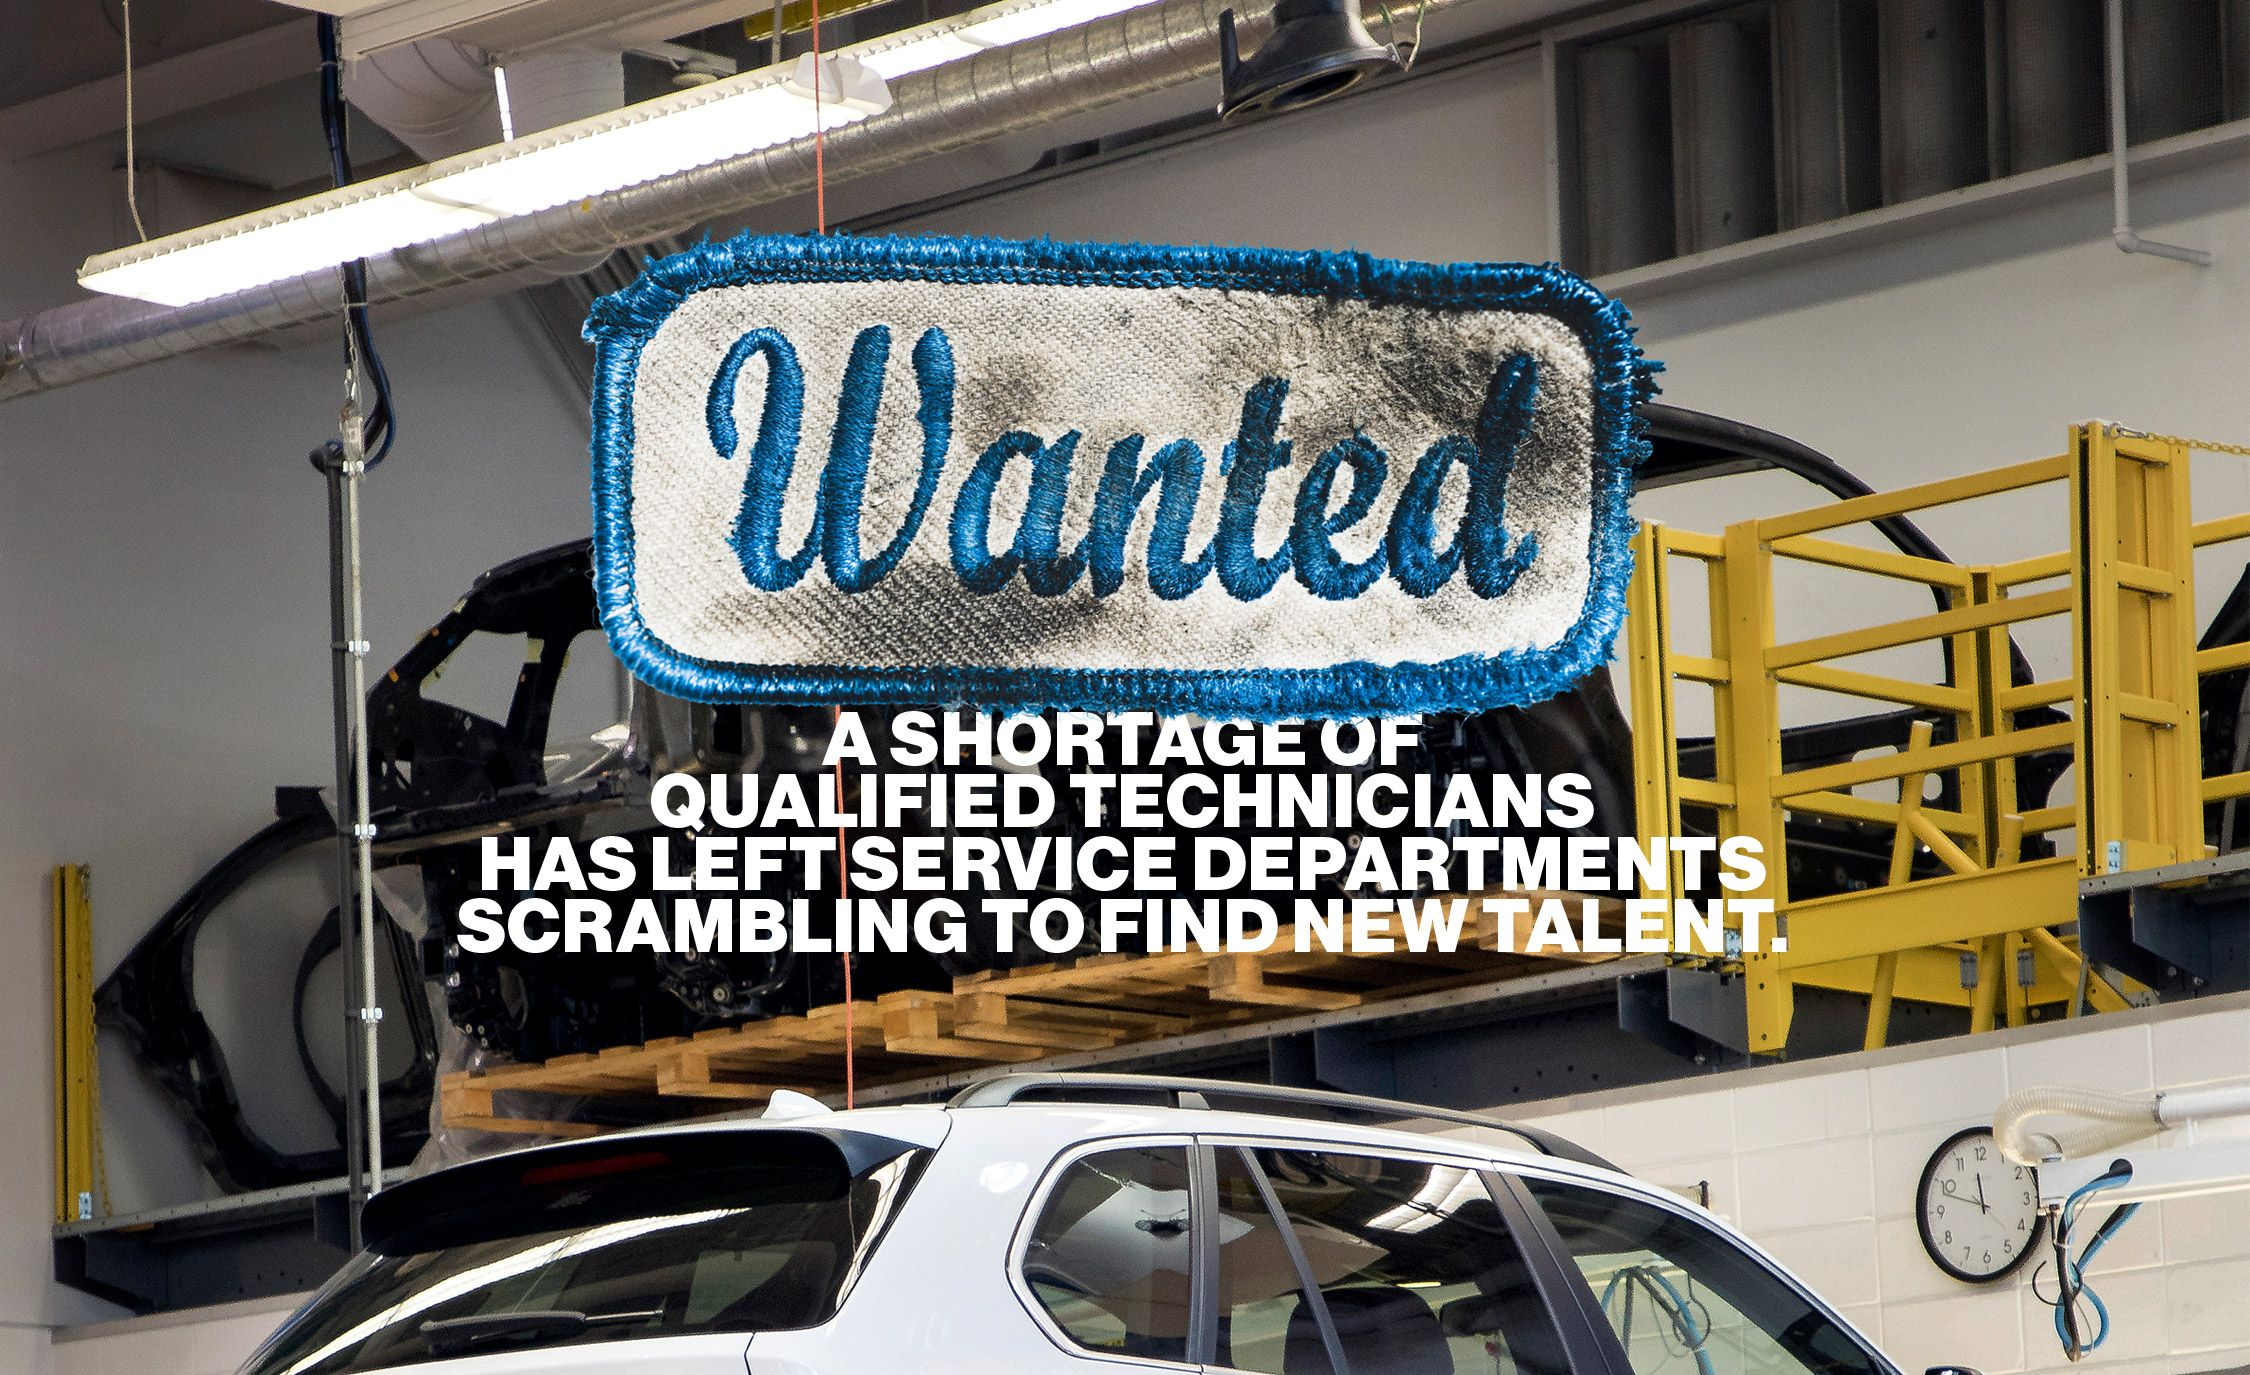 Wanted: A Shortage of Qualified Automotive Technicians Has Left Service Departments Scrambling To Find New Talent